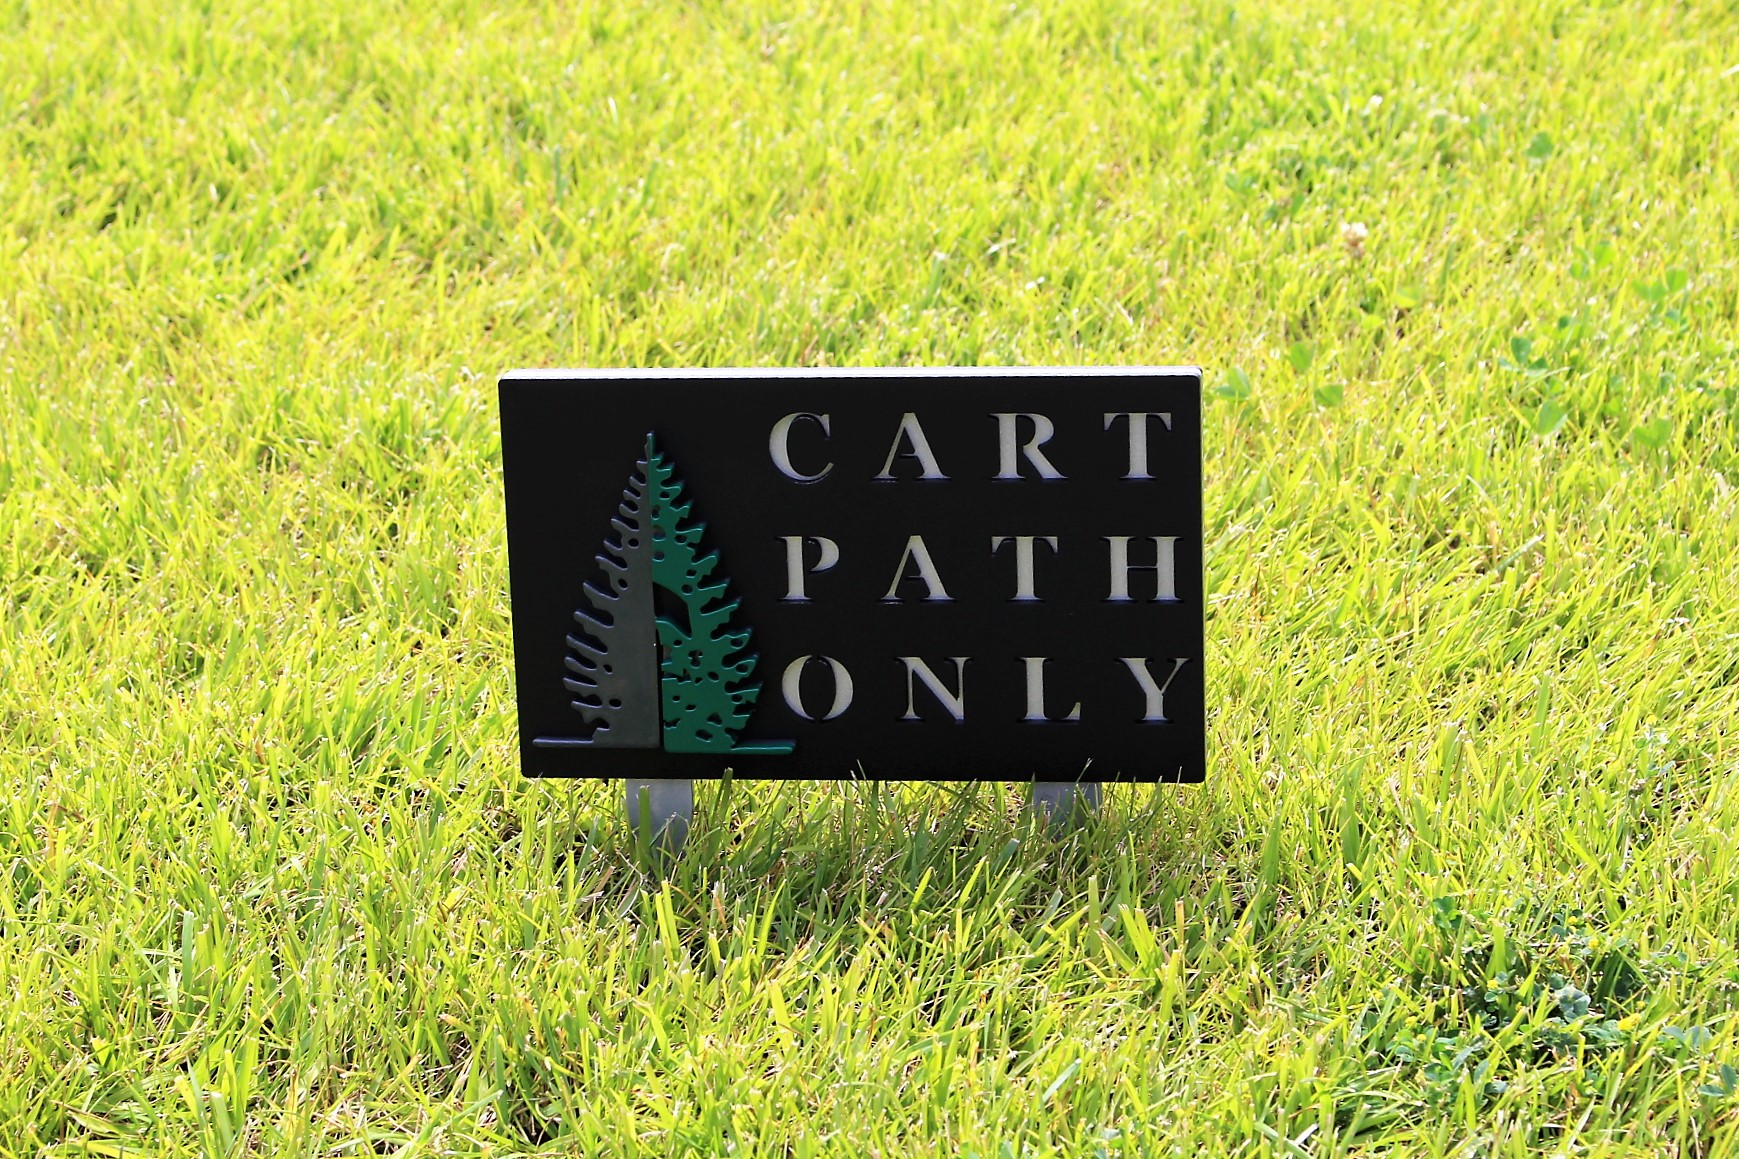 Cart-Path-Only-Sign-Olympic-hills